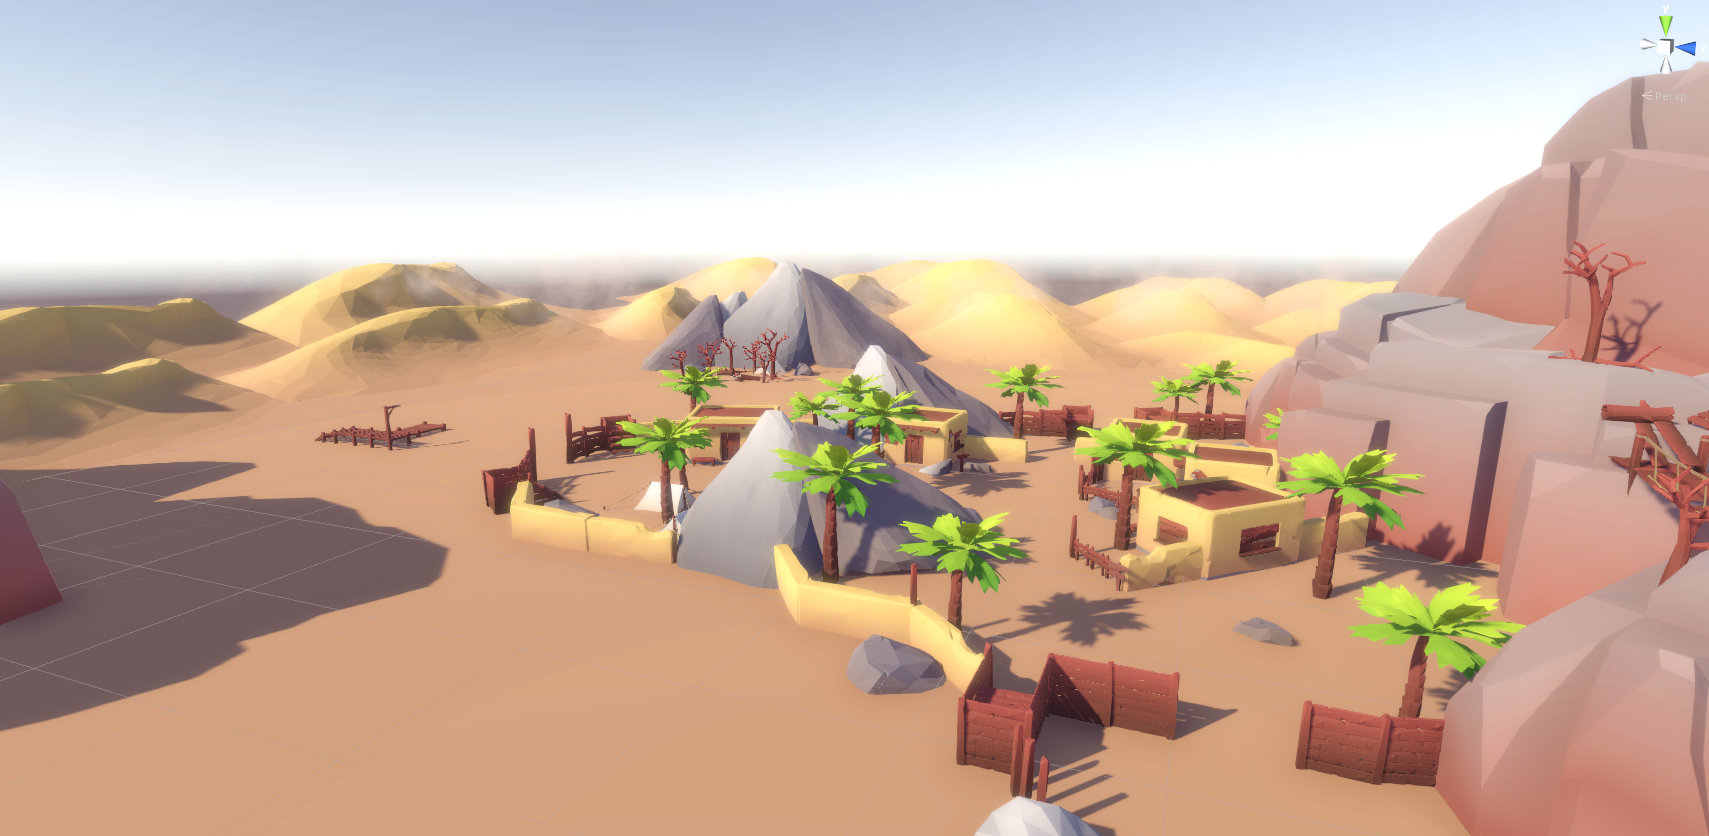 dunes_sand_blowing2.PNG